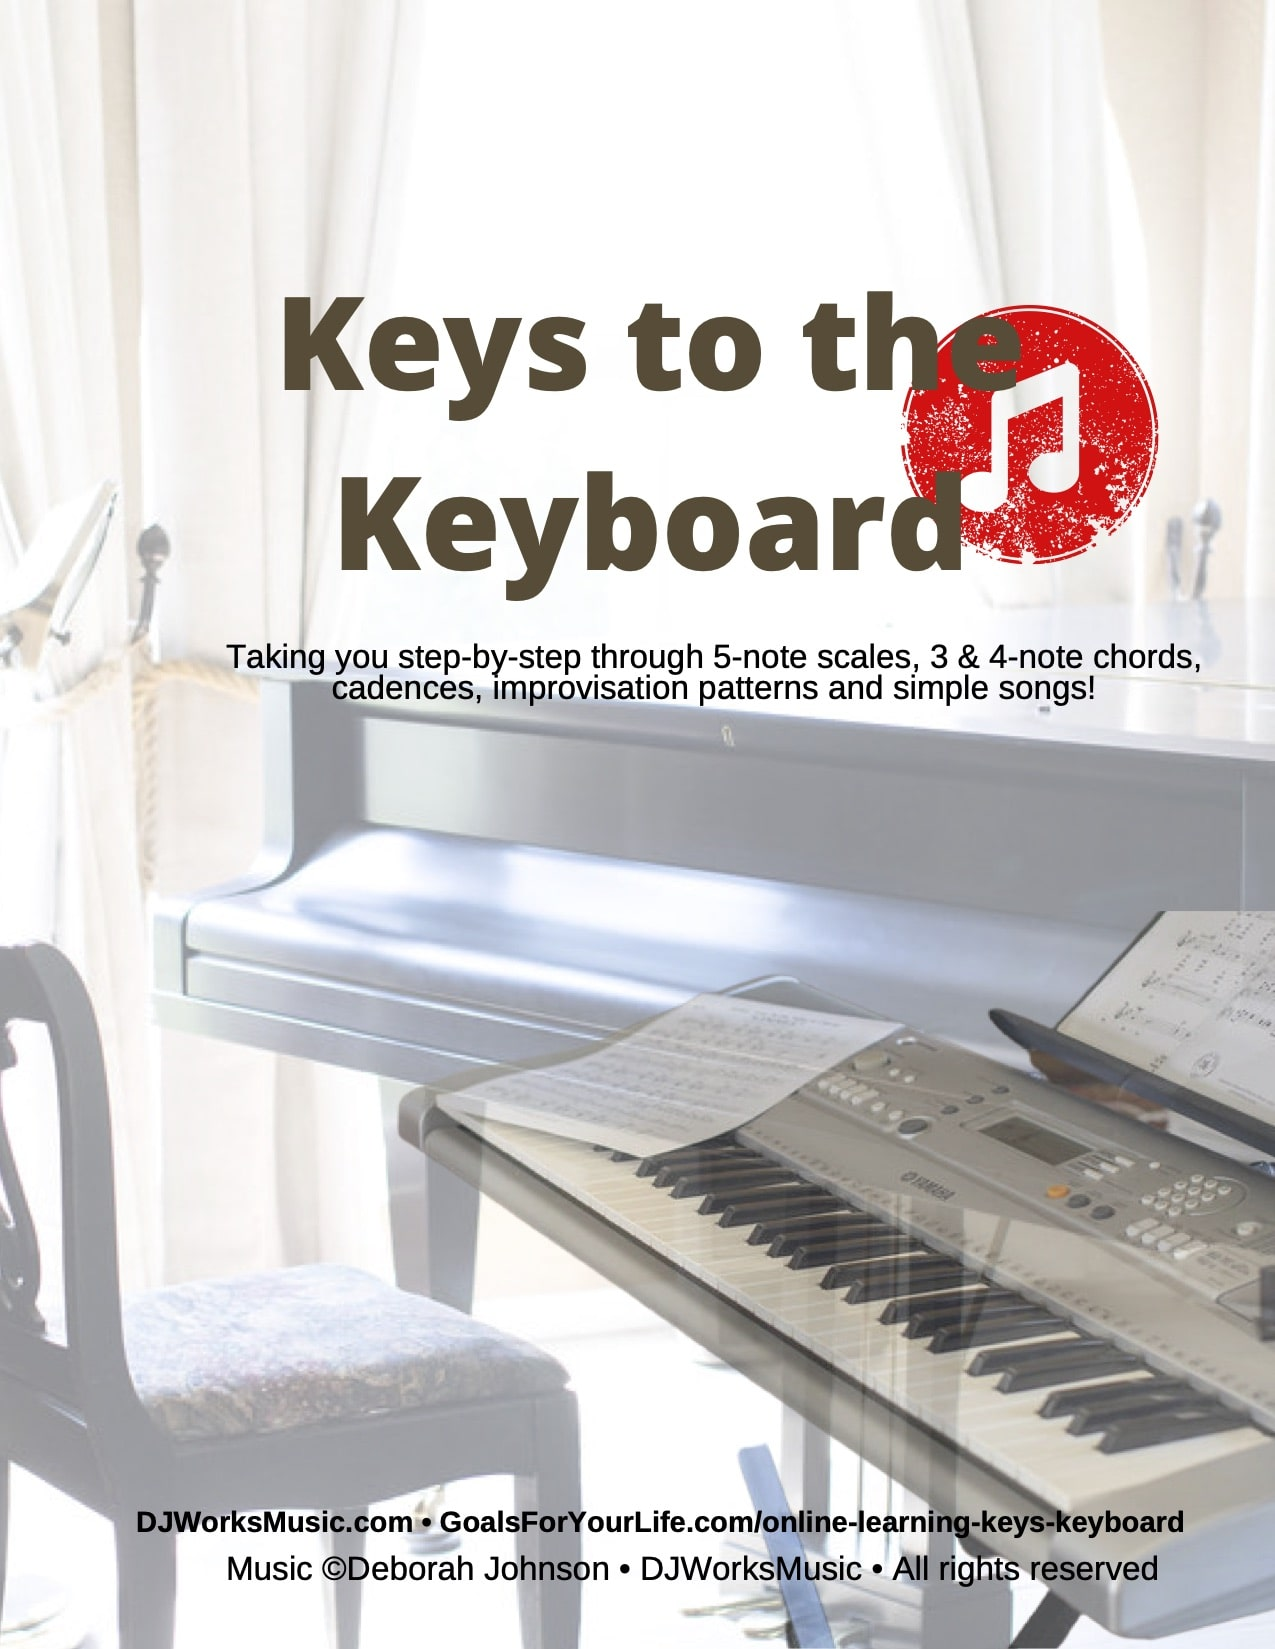 Keys to the Keyboard Cover 2021